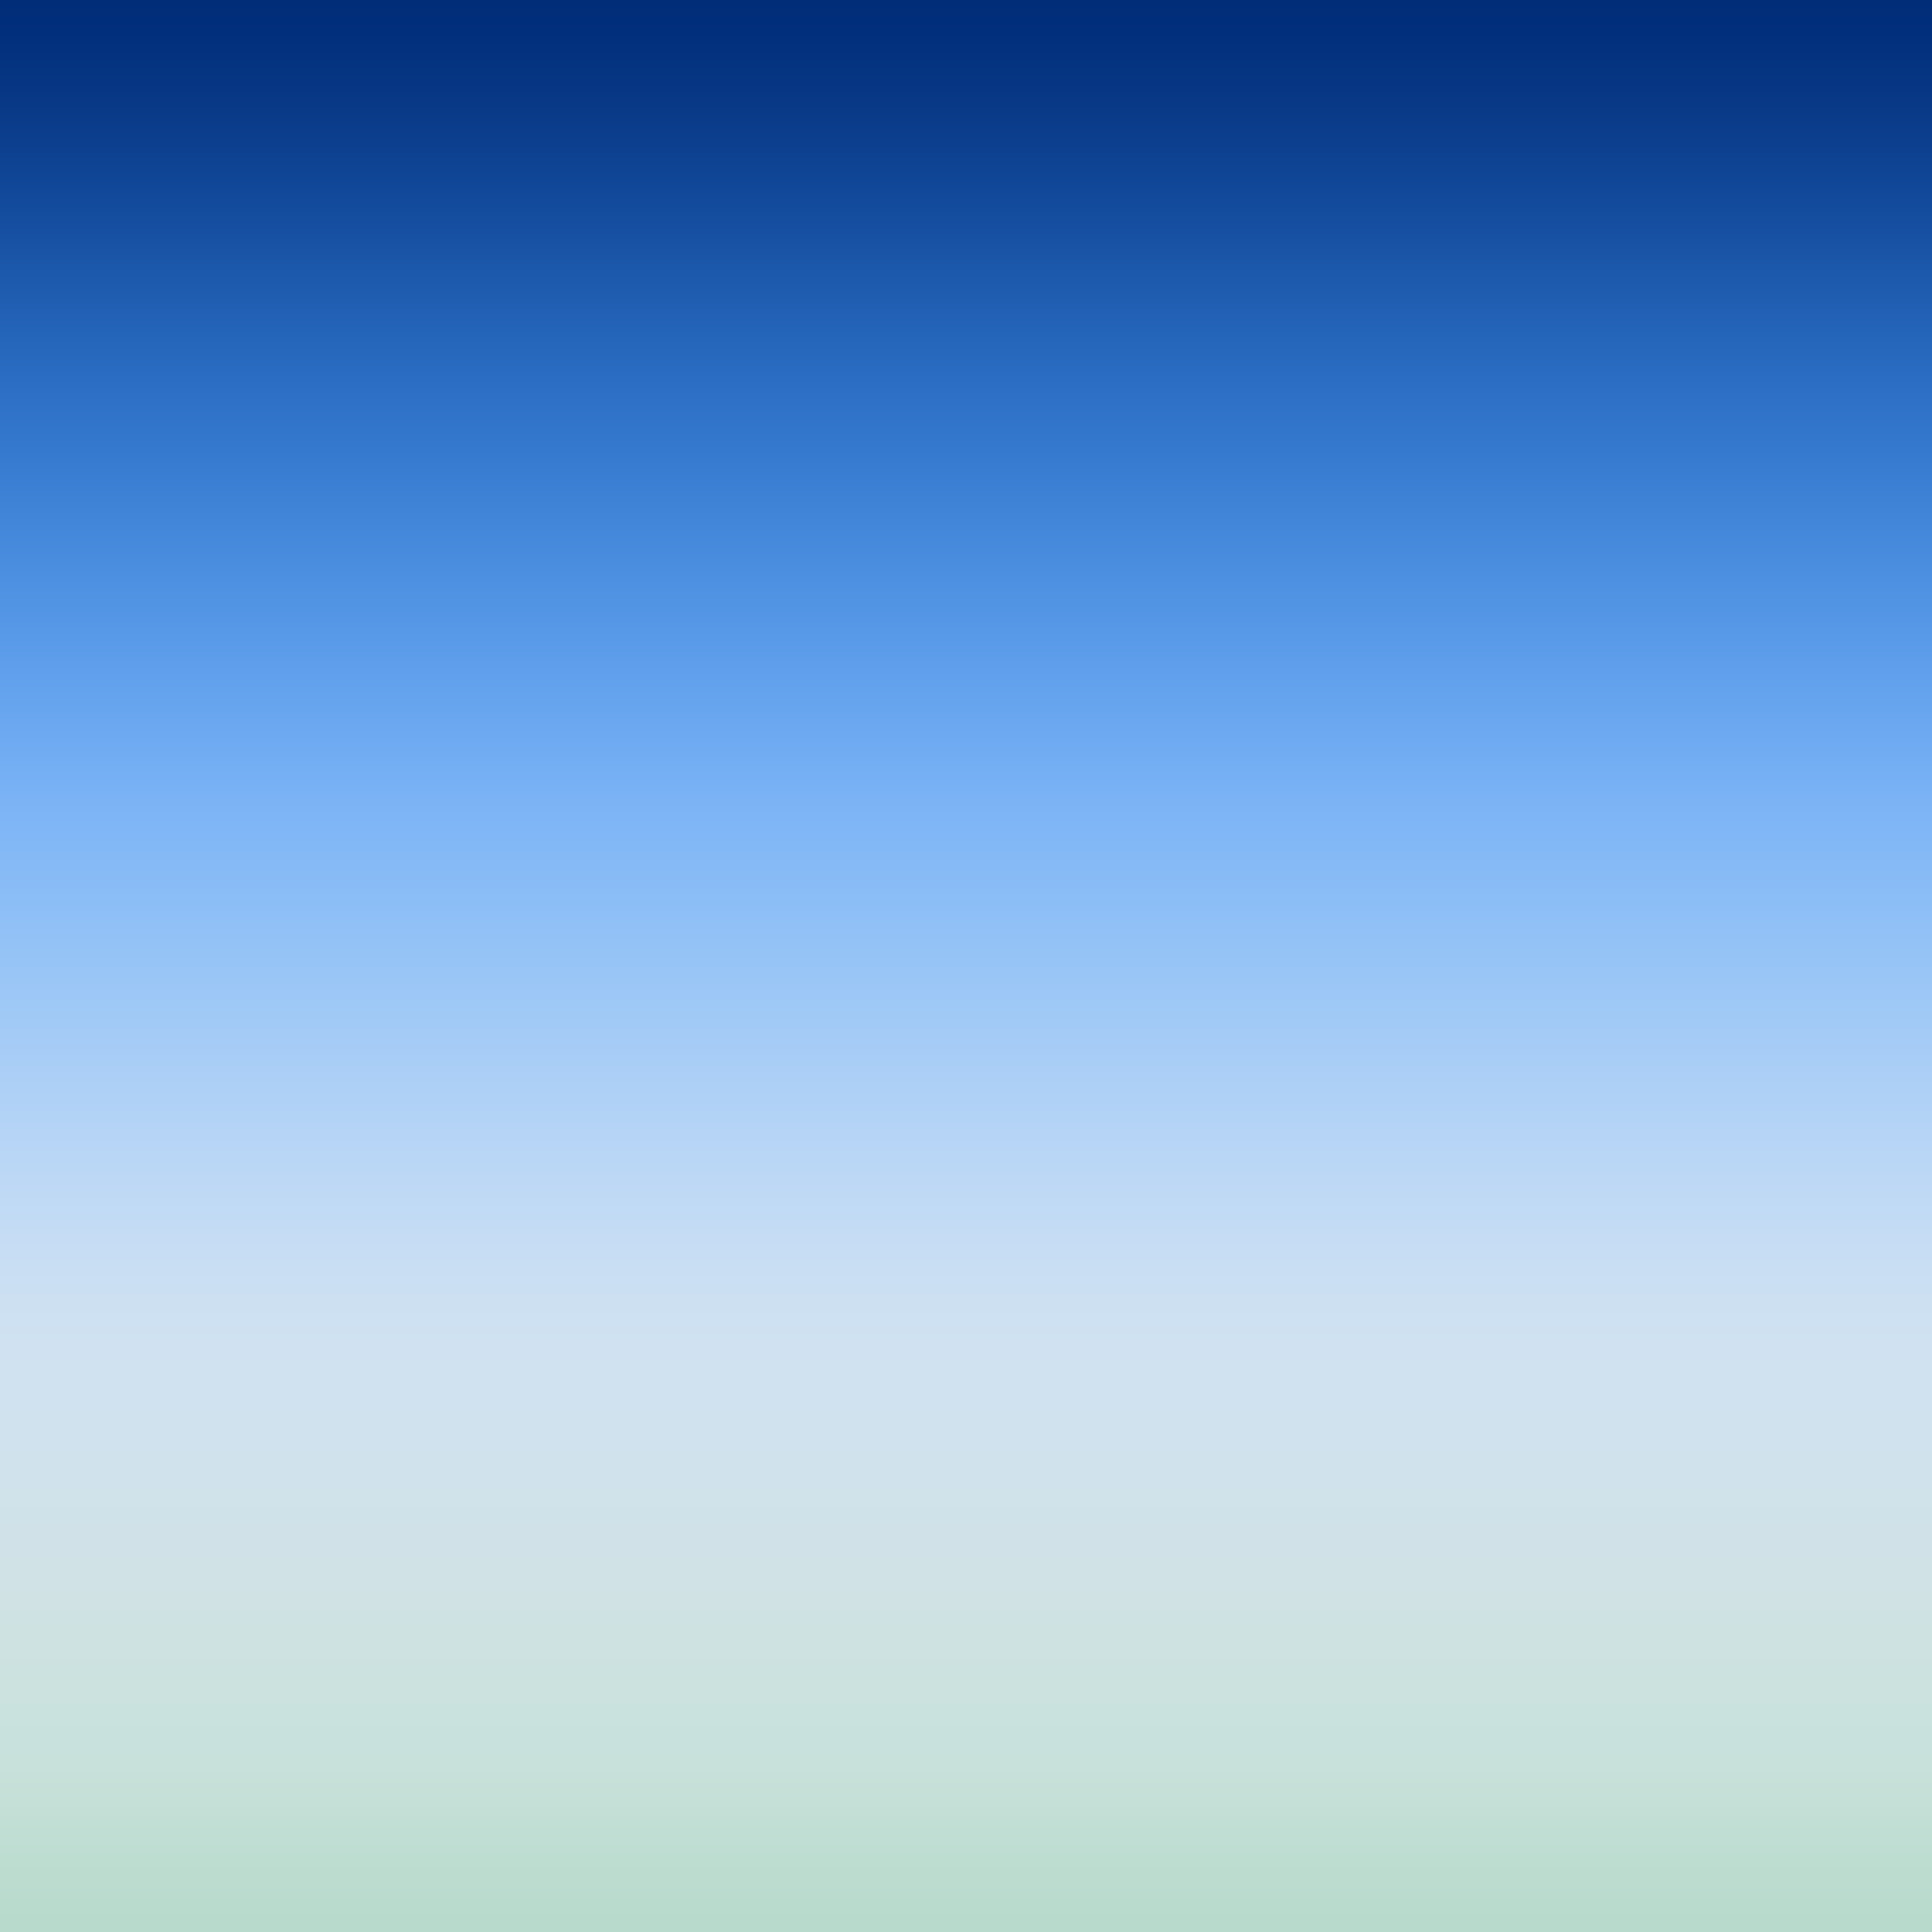 wallpaper size for ipad mini retina collections